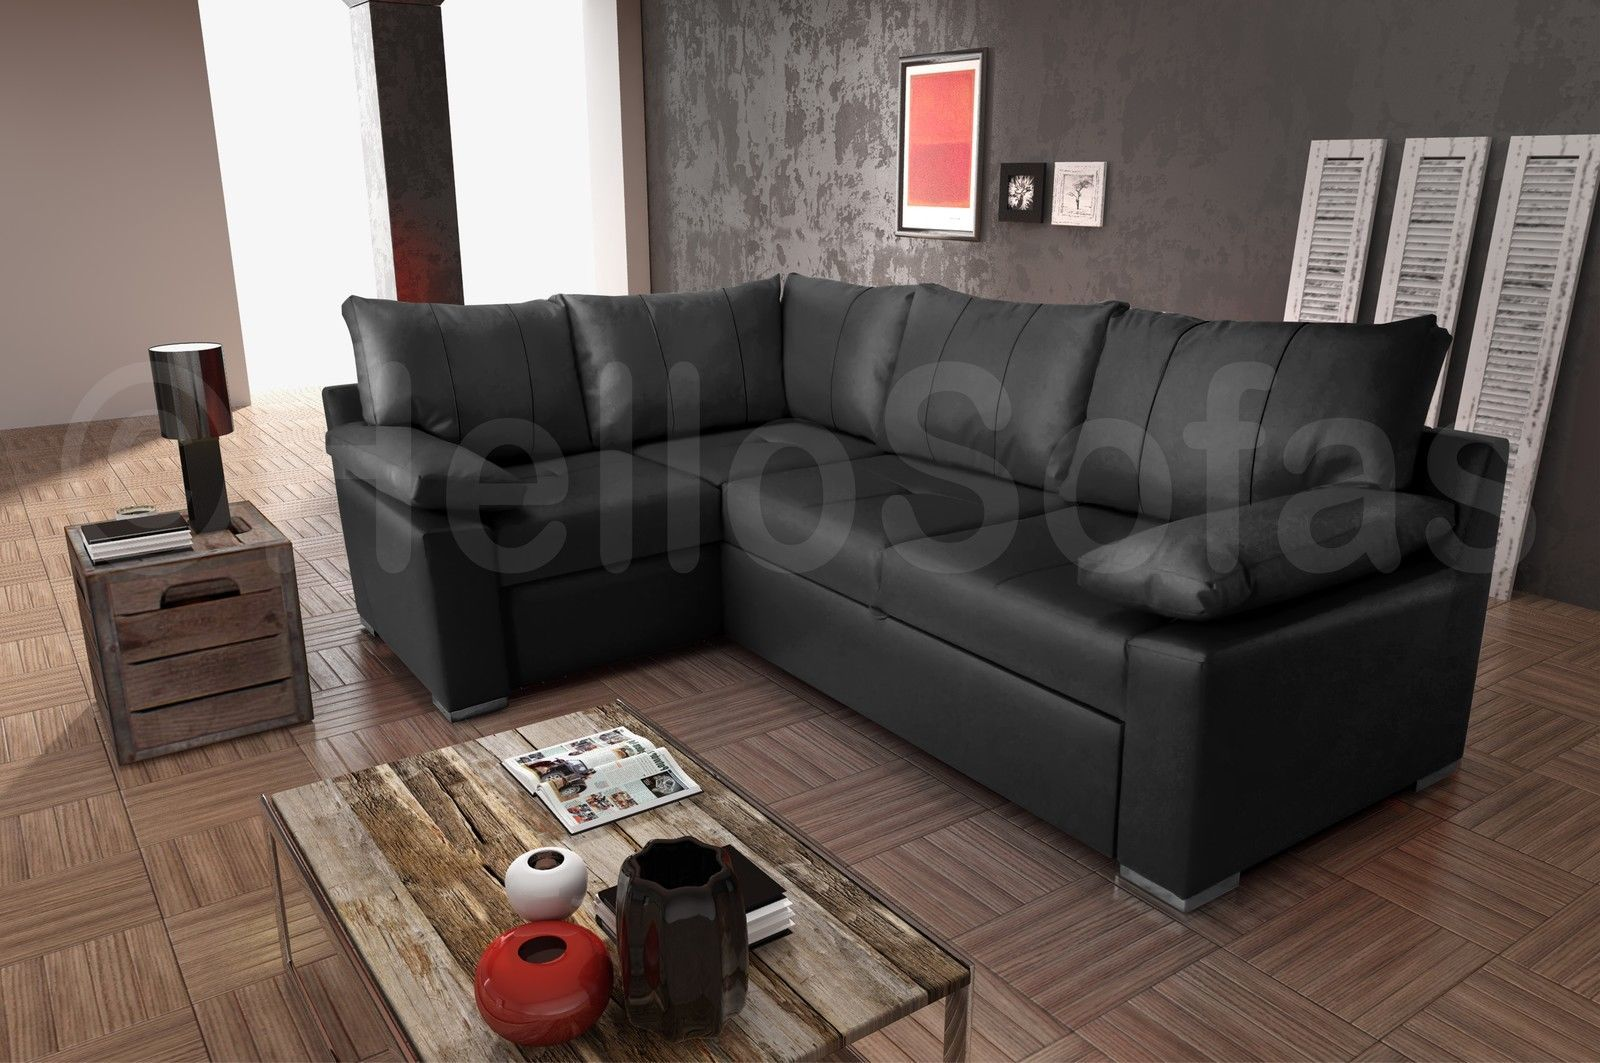 The New Set Of Style Quotient Articles Is The Corner Sofa Beds